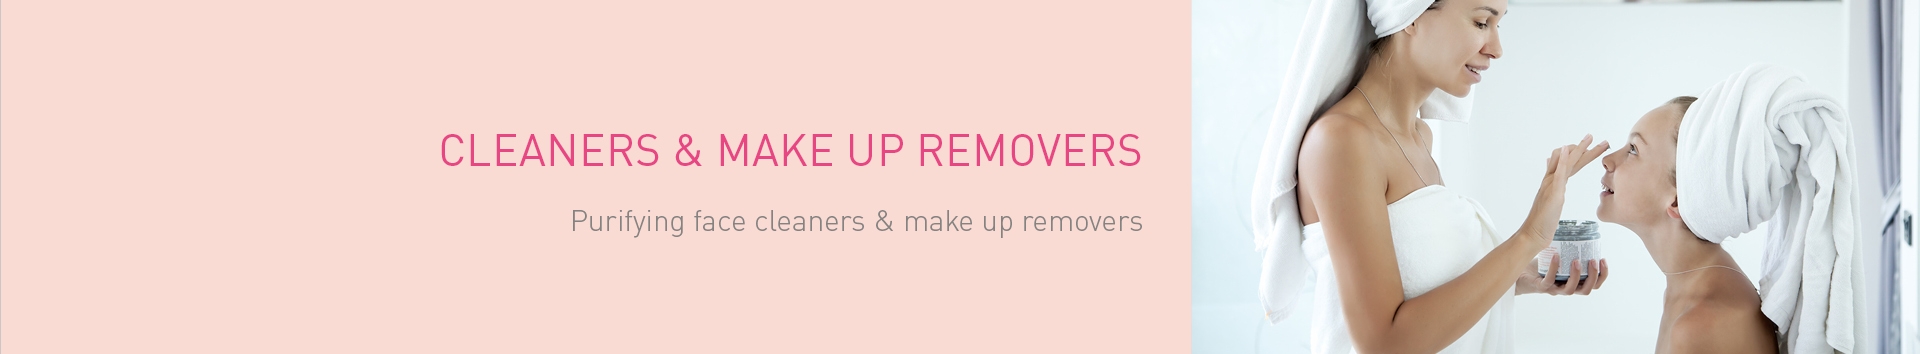 Cleaners & make up removers